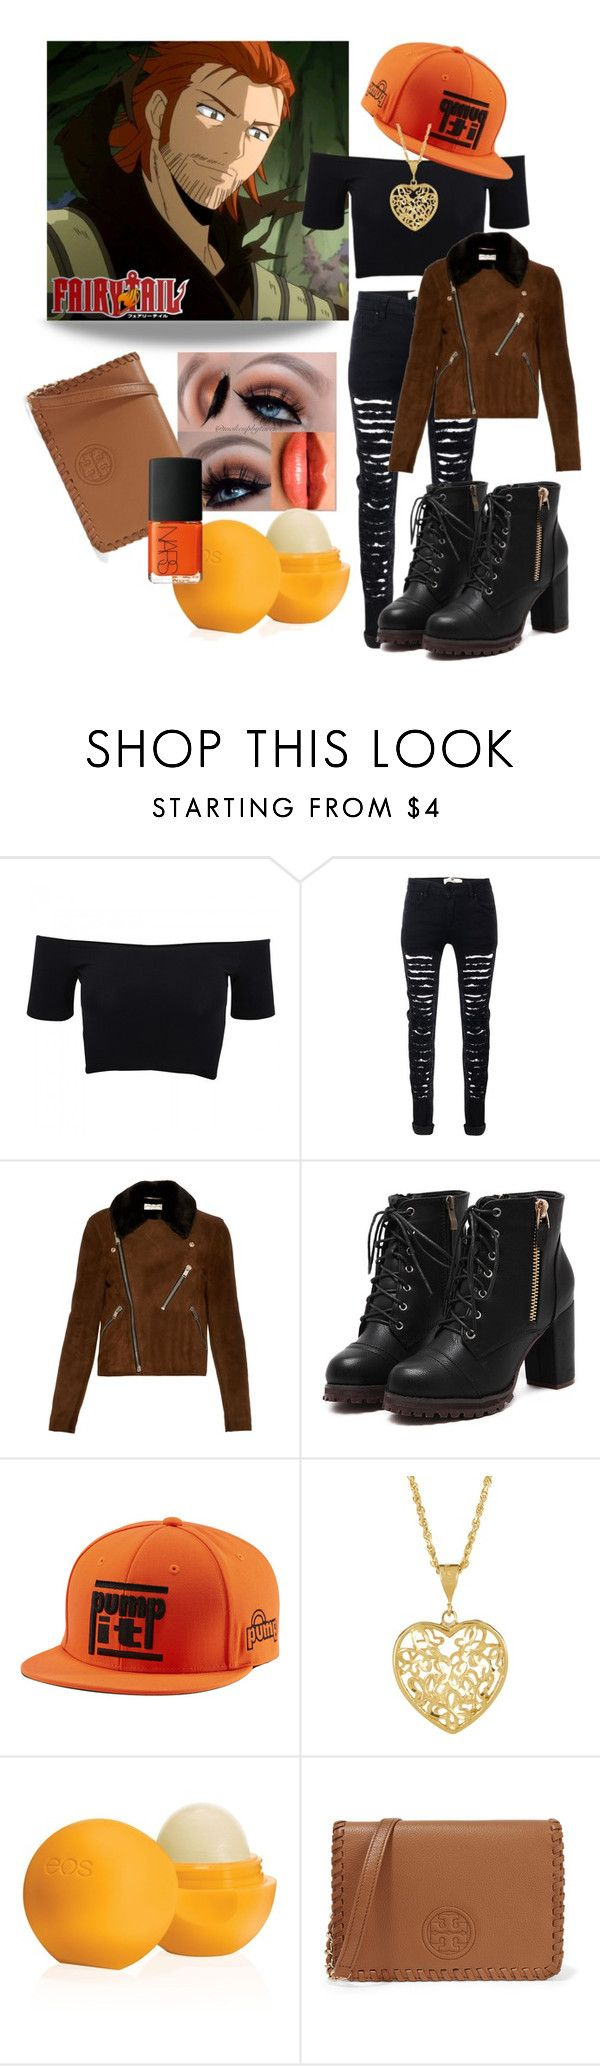 """Fairy Tail Gildarts / casual outfit"" by stormtrooper117 ❤ liked on Polyvore featuring American Apparel, Yves Saint Laurent, Castello, Burberry, Reebok, Eos and Tory Burch"